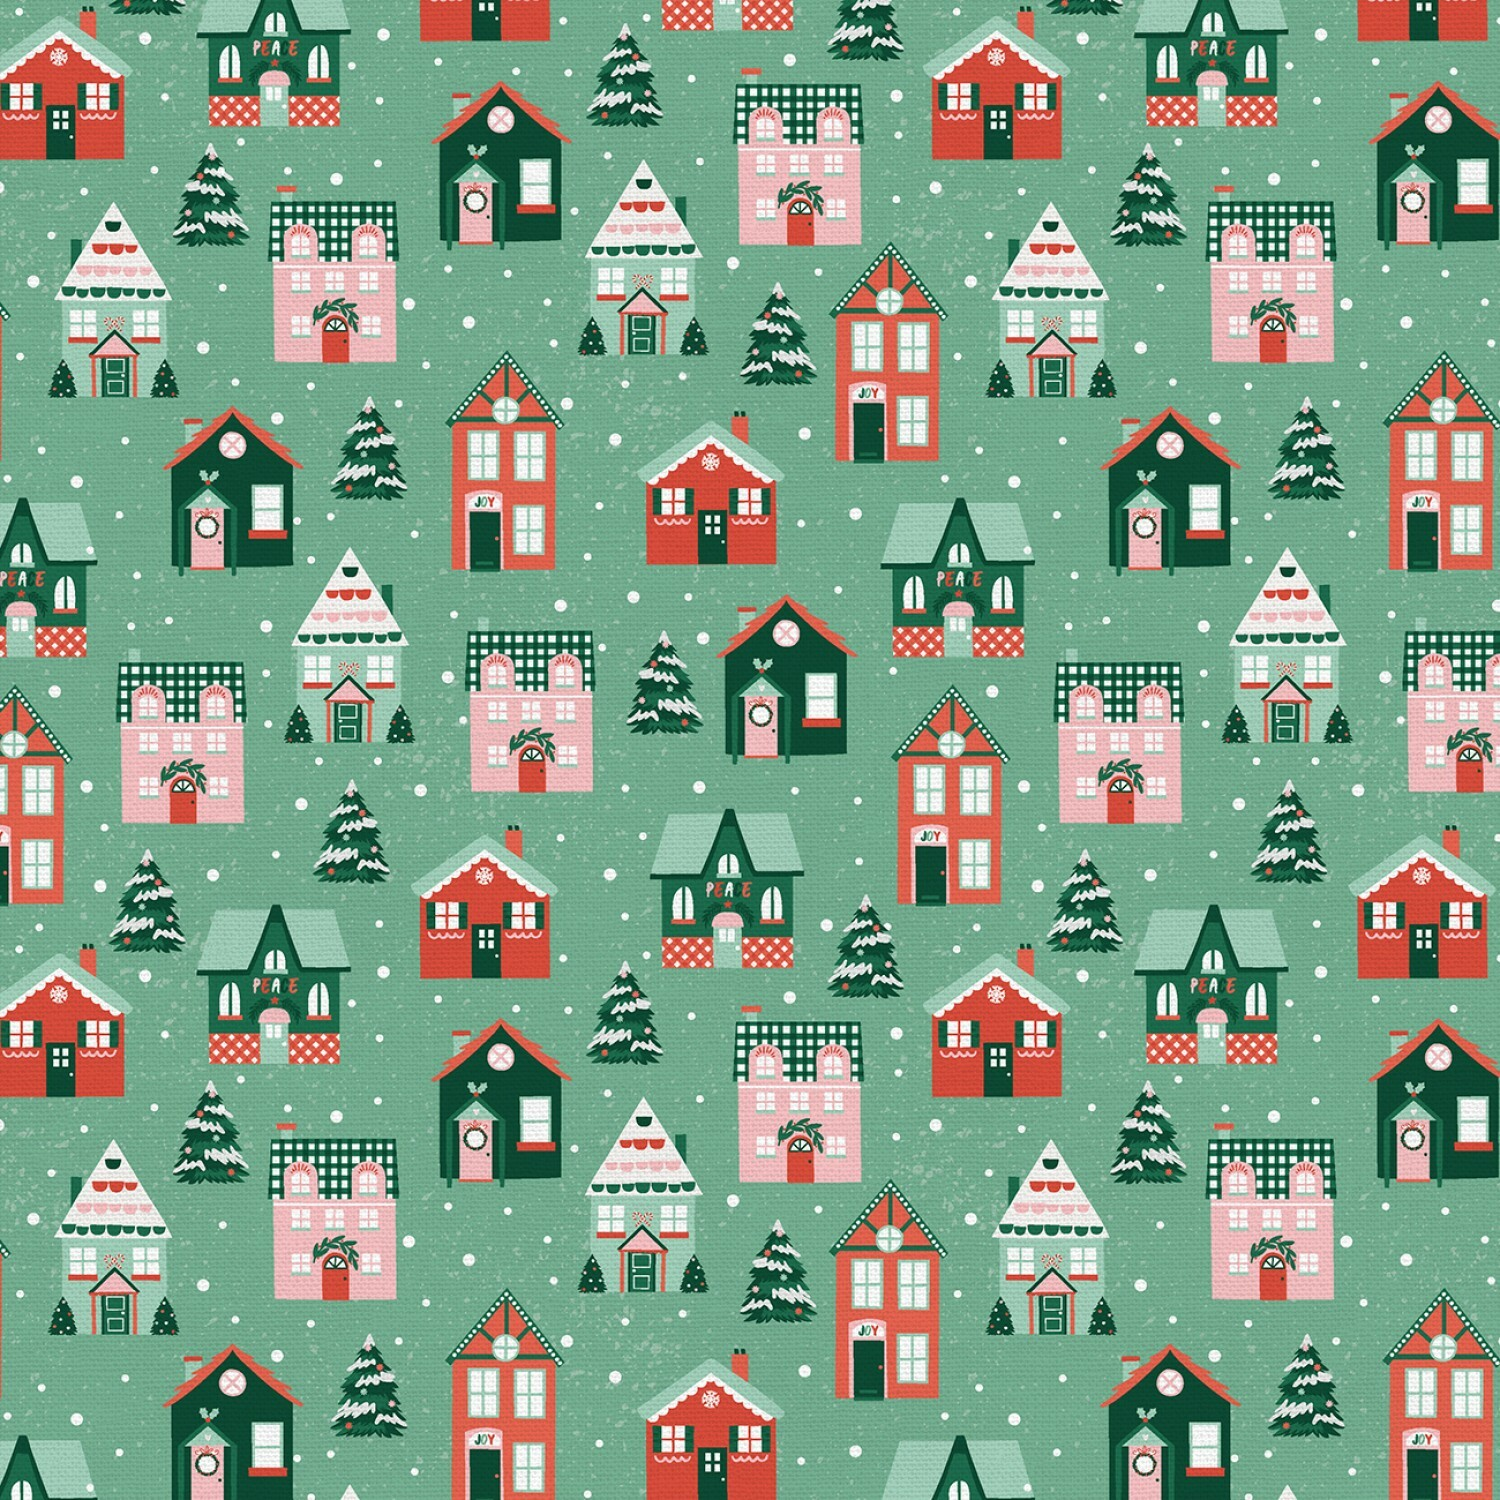 Home for Christmas - Houses on Green - 1/2m cut 57600